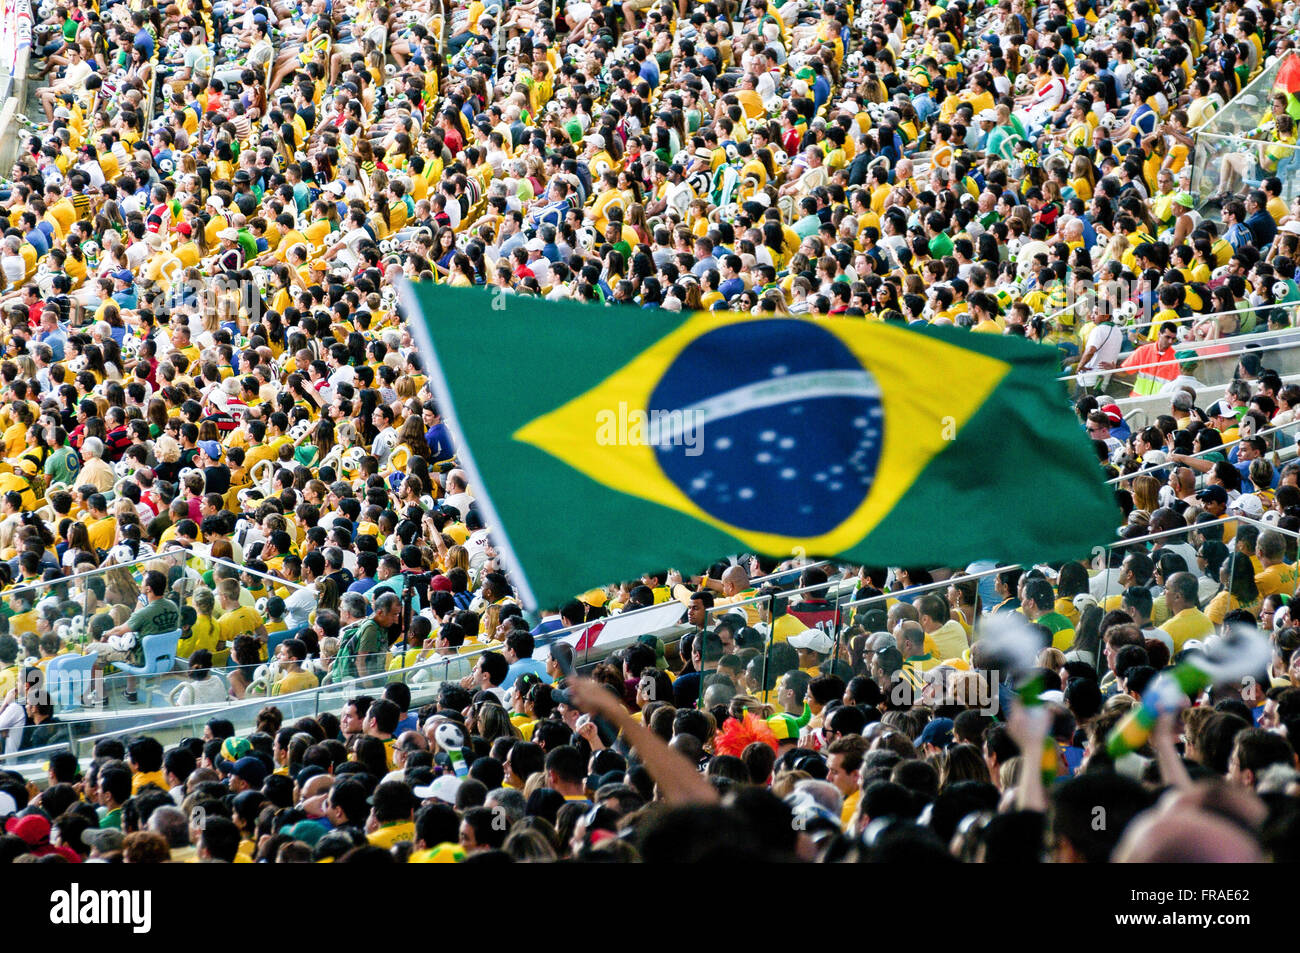 Fans at Estadio do Maracana retired in the match between Brazil and England selections - Stock Image